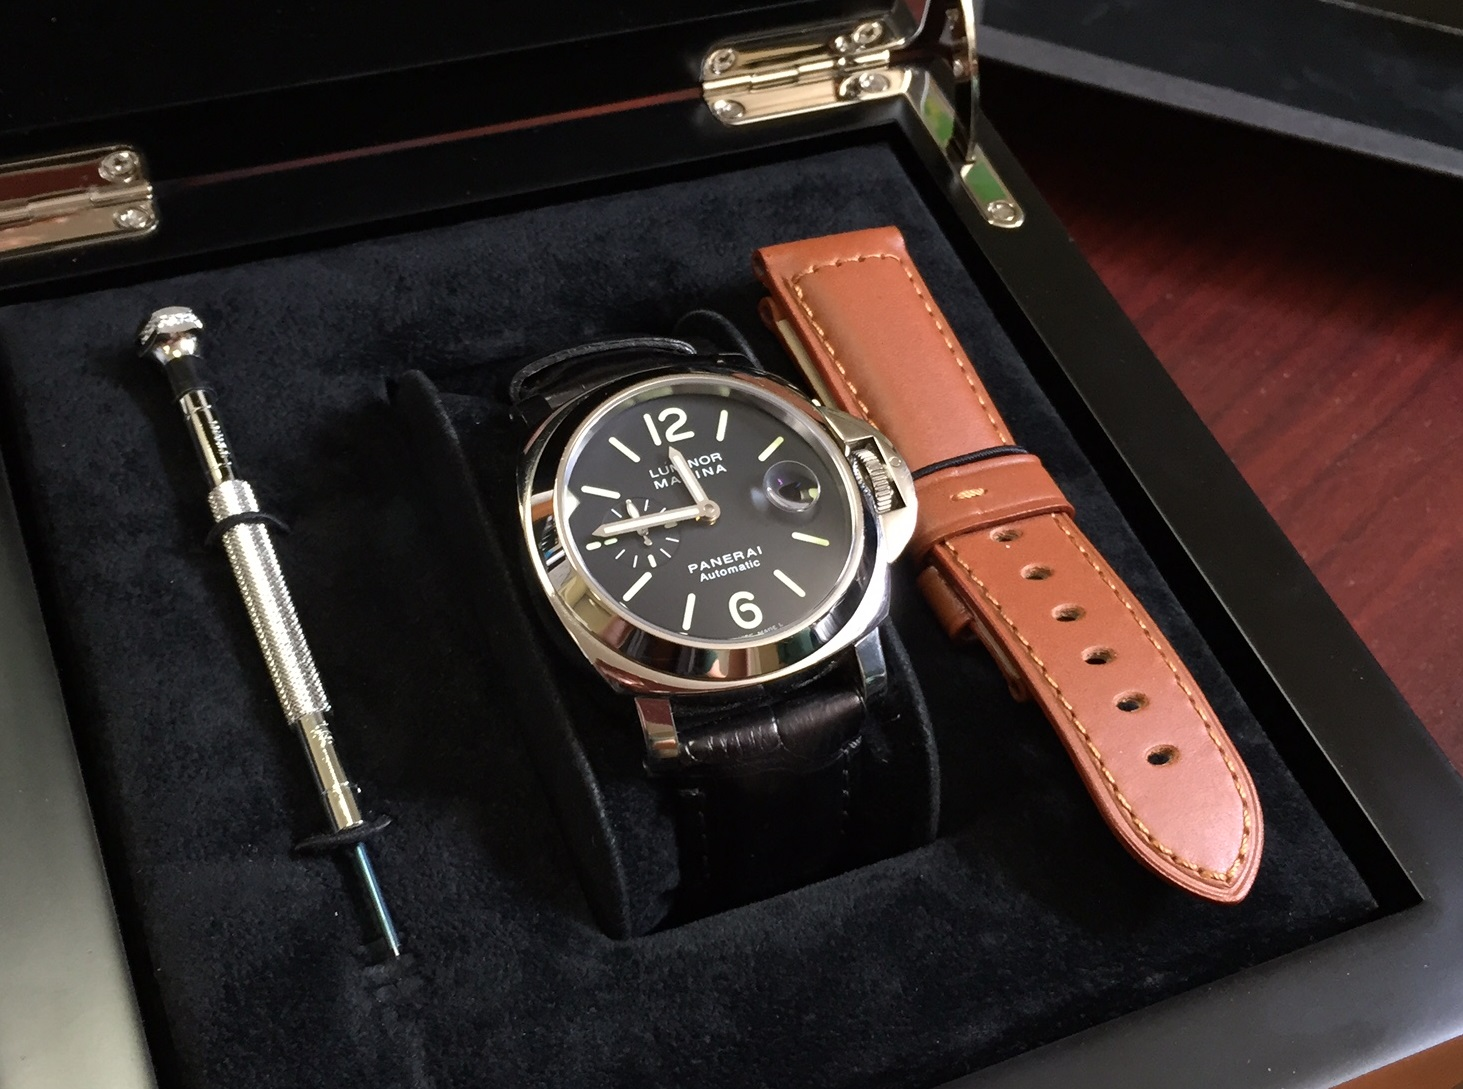 Panerai Luminor Marina Automatic - $3,900